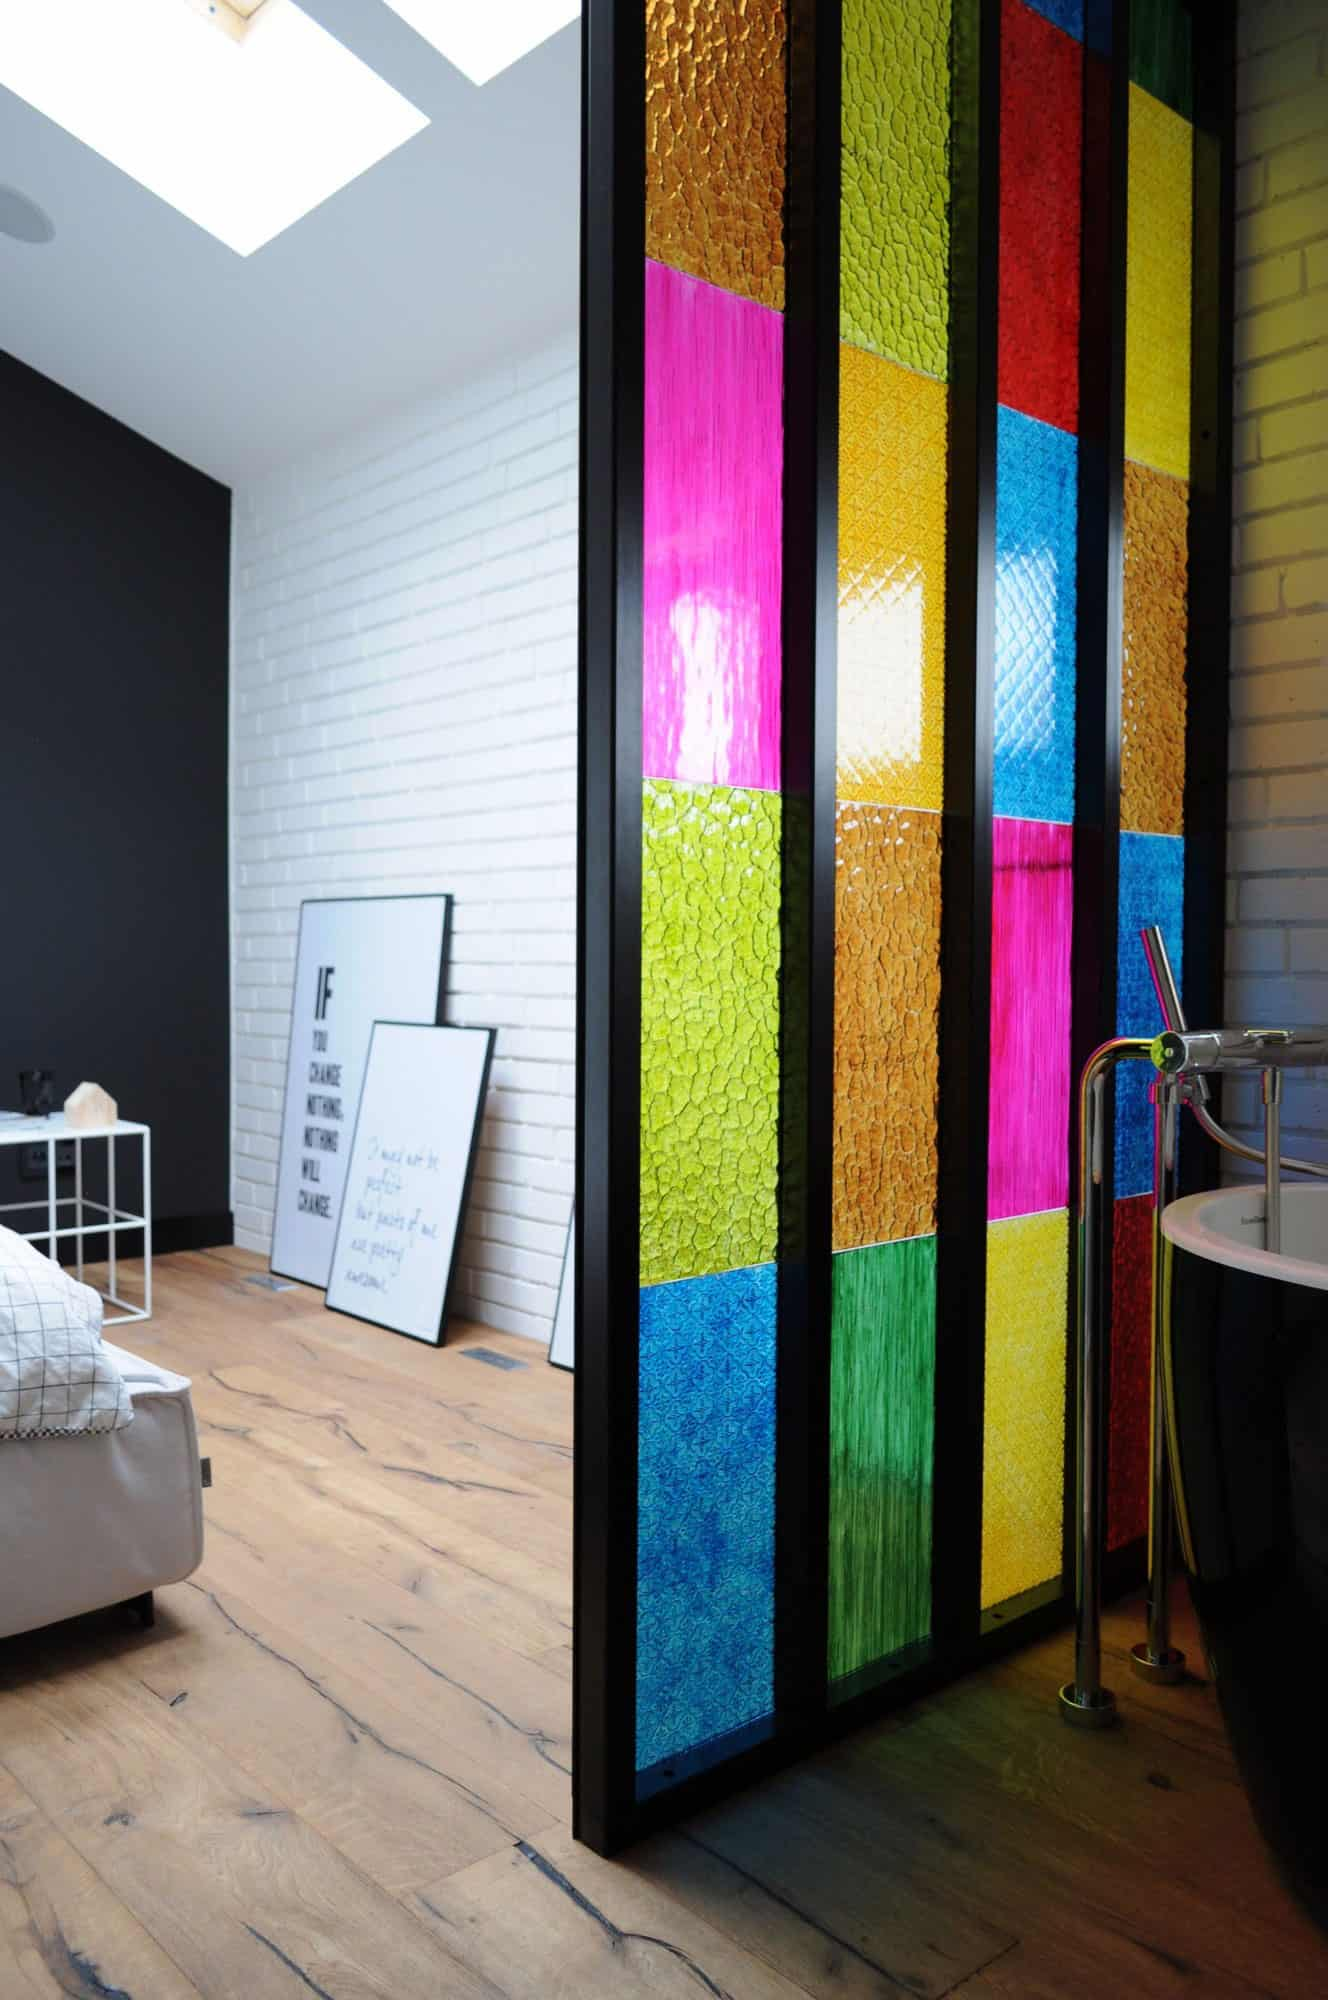 Bedroom Partition bedroom bathroom partition in colored plastic panels - diy idea